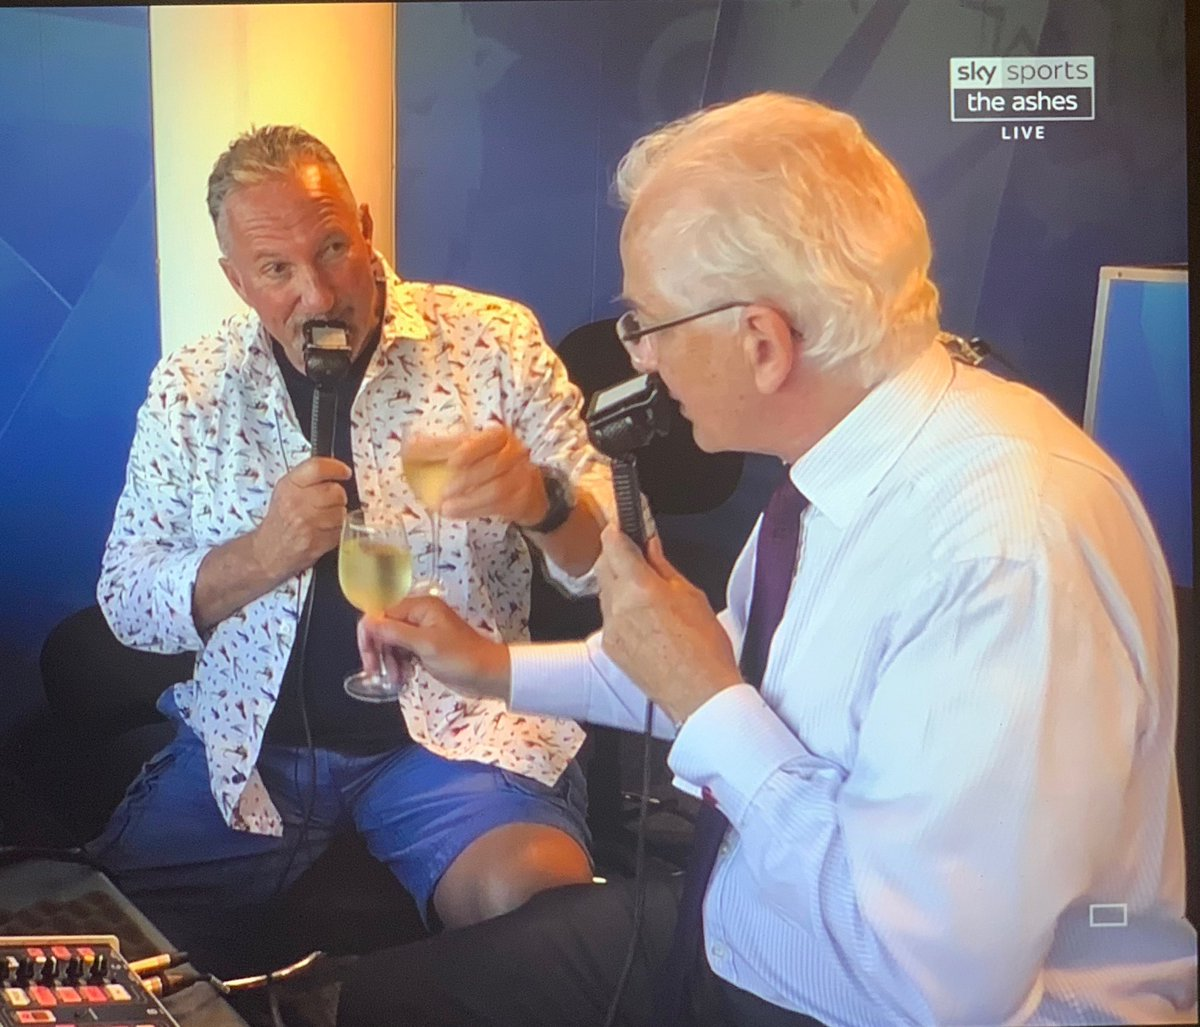 Amid the joy of a great summer of England cricket, a moment of real sadness. The final seconds of commentary from two absolute legends of the game. Thanks ⁦@BeefyBotham⁩ ⁦@David215Gower⁩ - you guys have been fantastic. 👍👏👏